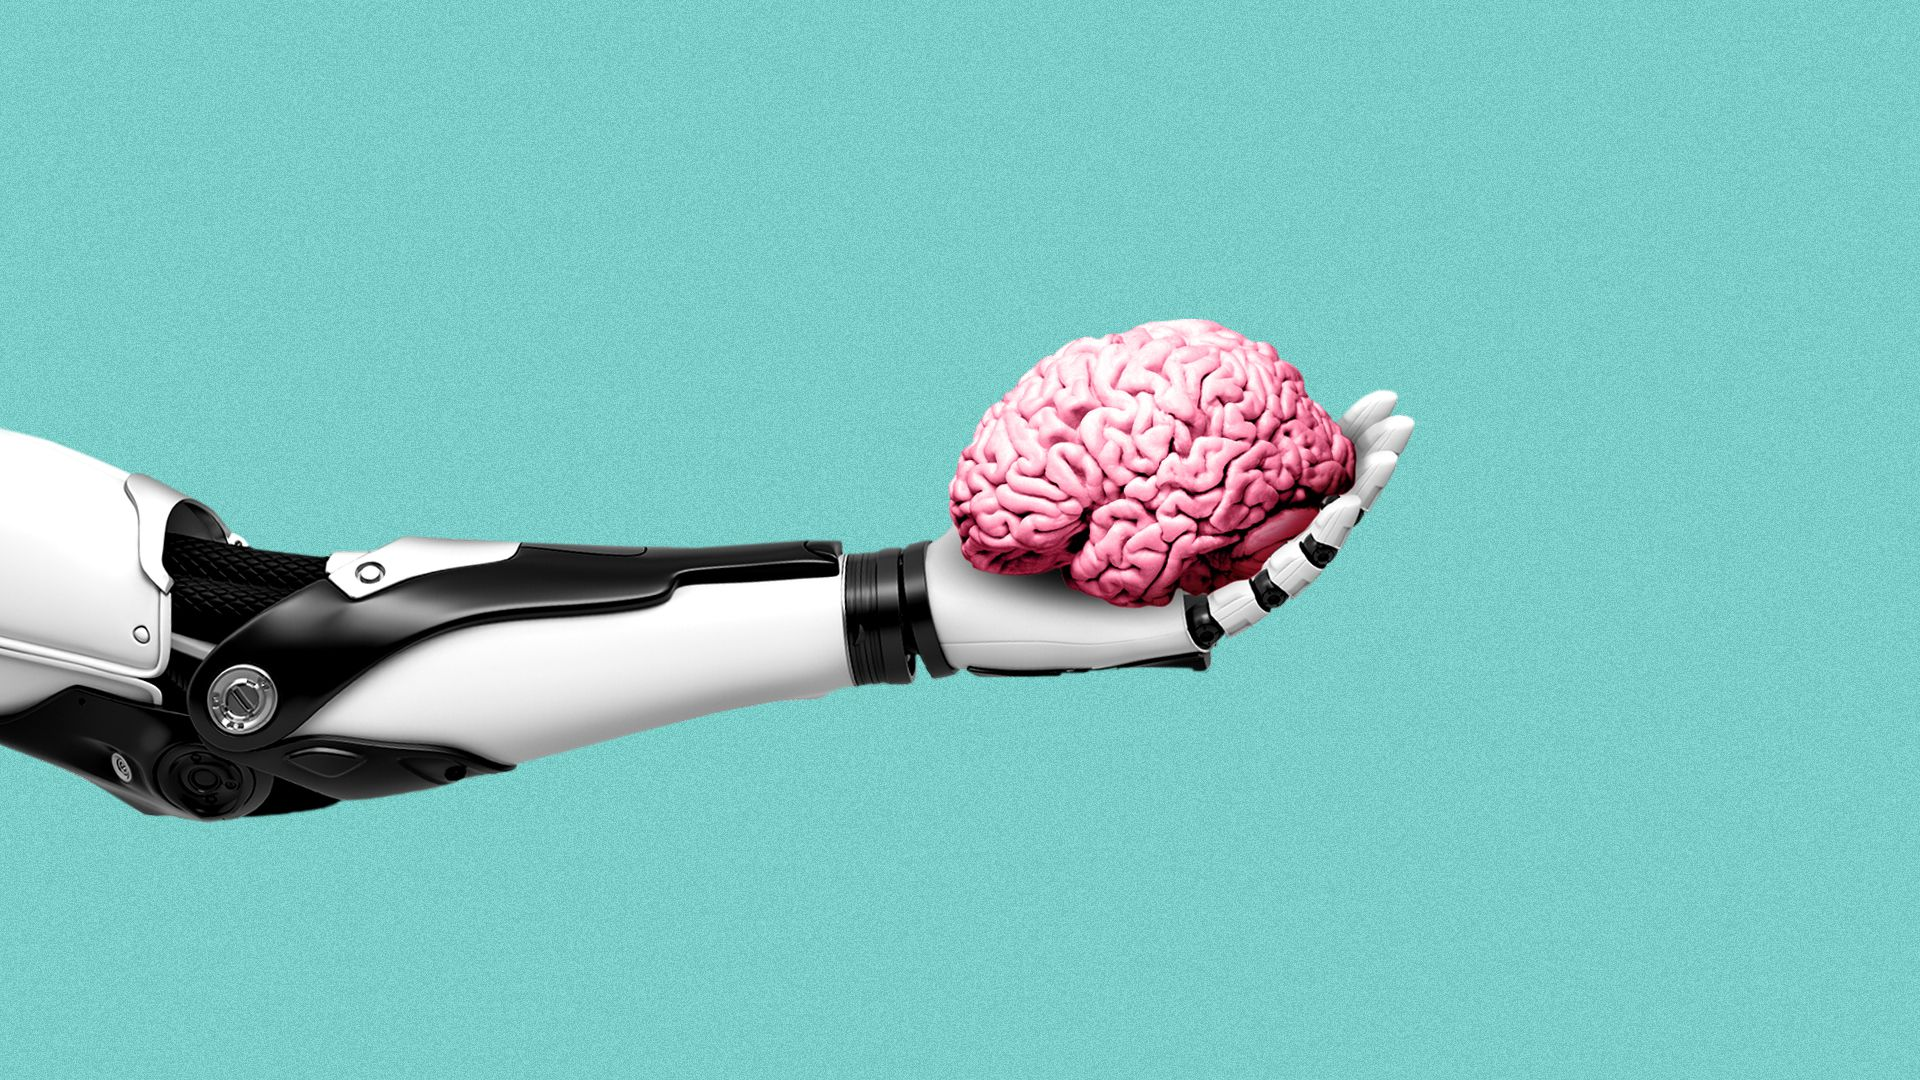 Illustration of a robot arm holding a brain.